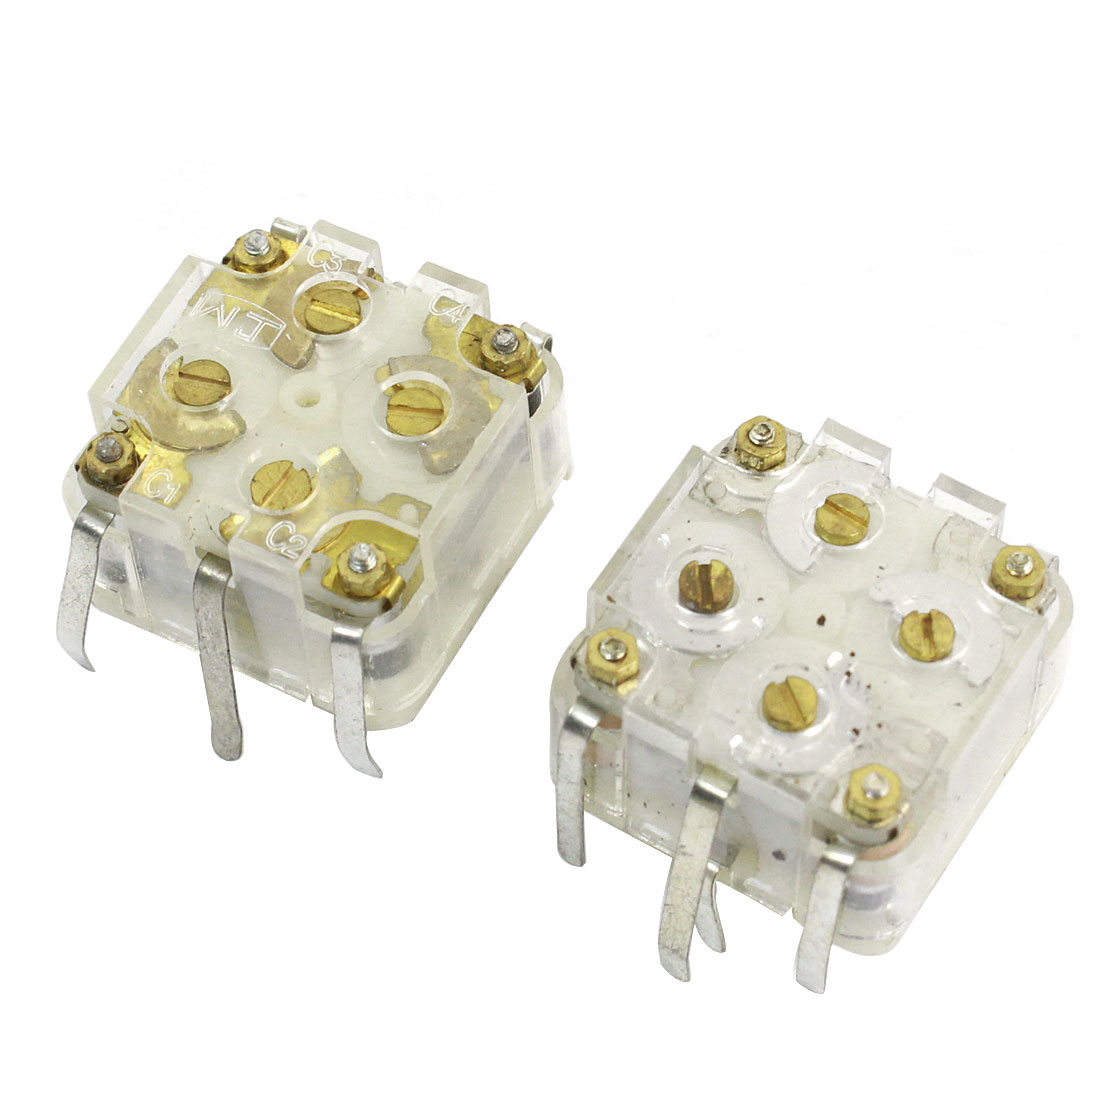 2pcs 443DF 20-126pF Medium Variodencer Adjustable Capacitor for Radio